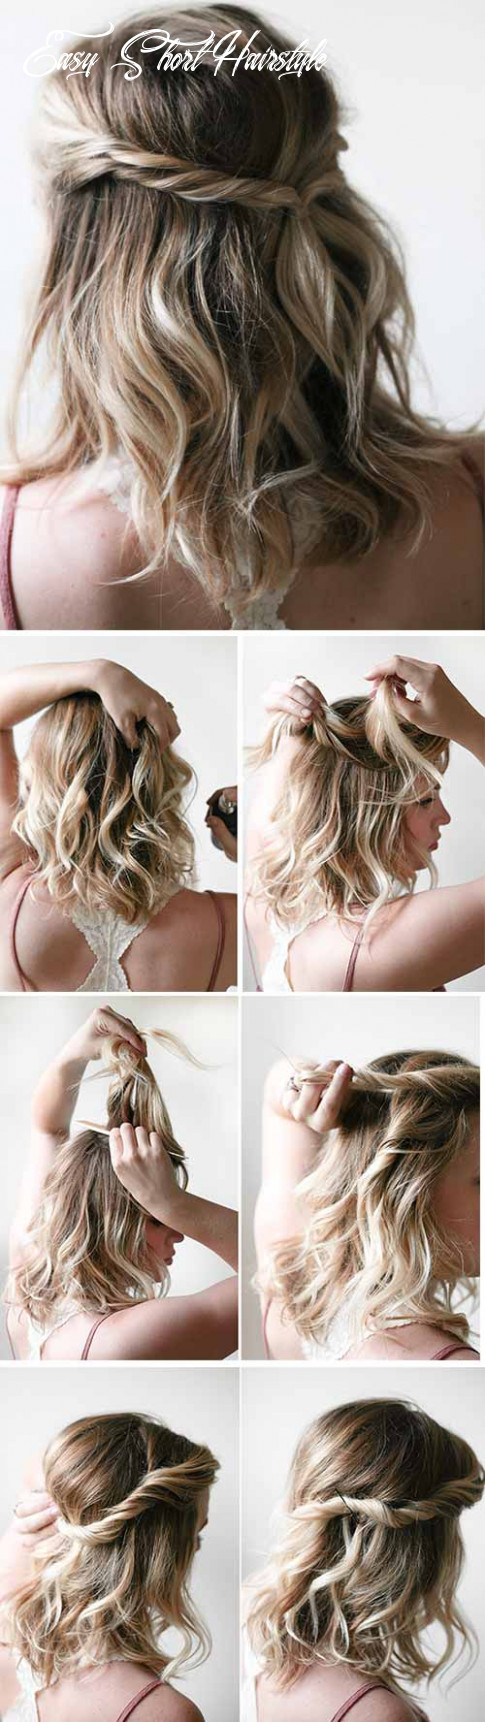 10 incredible diy short hairstyles a step by step guide easy short hairstyle